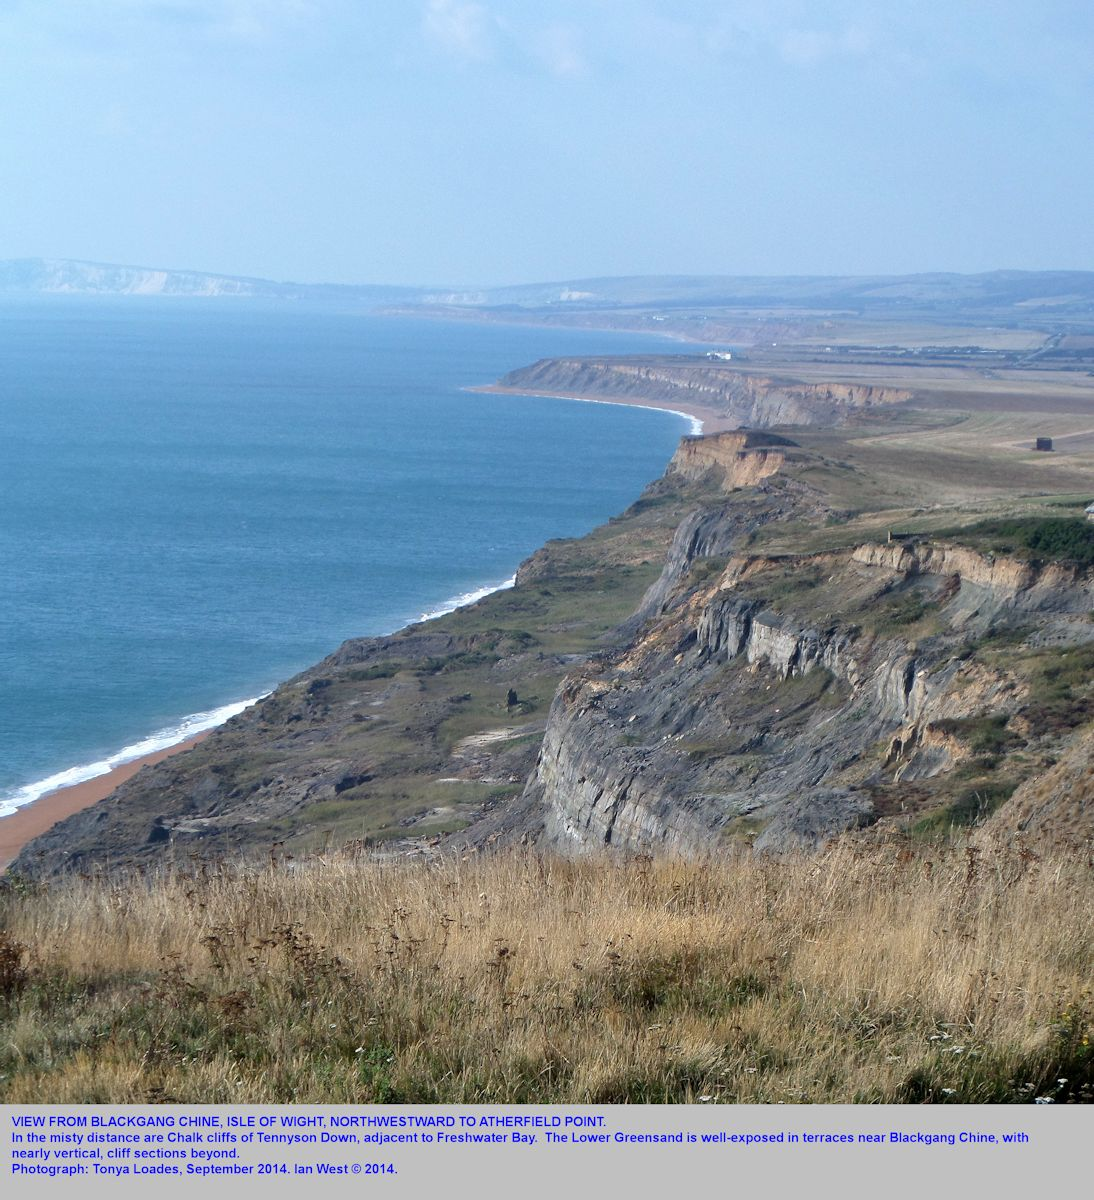 View towards Atherfield Point from Blackgang Chine, Isle of Wight, showing Lower Greensand cliffs, September 2014